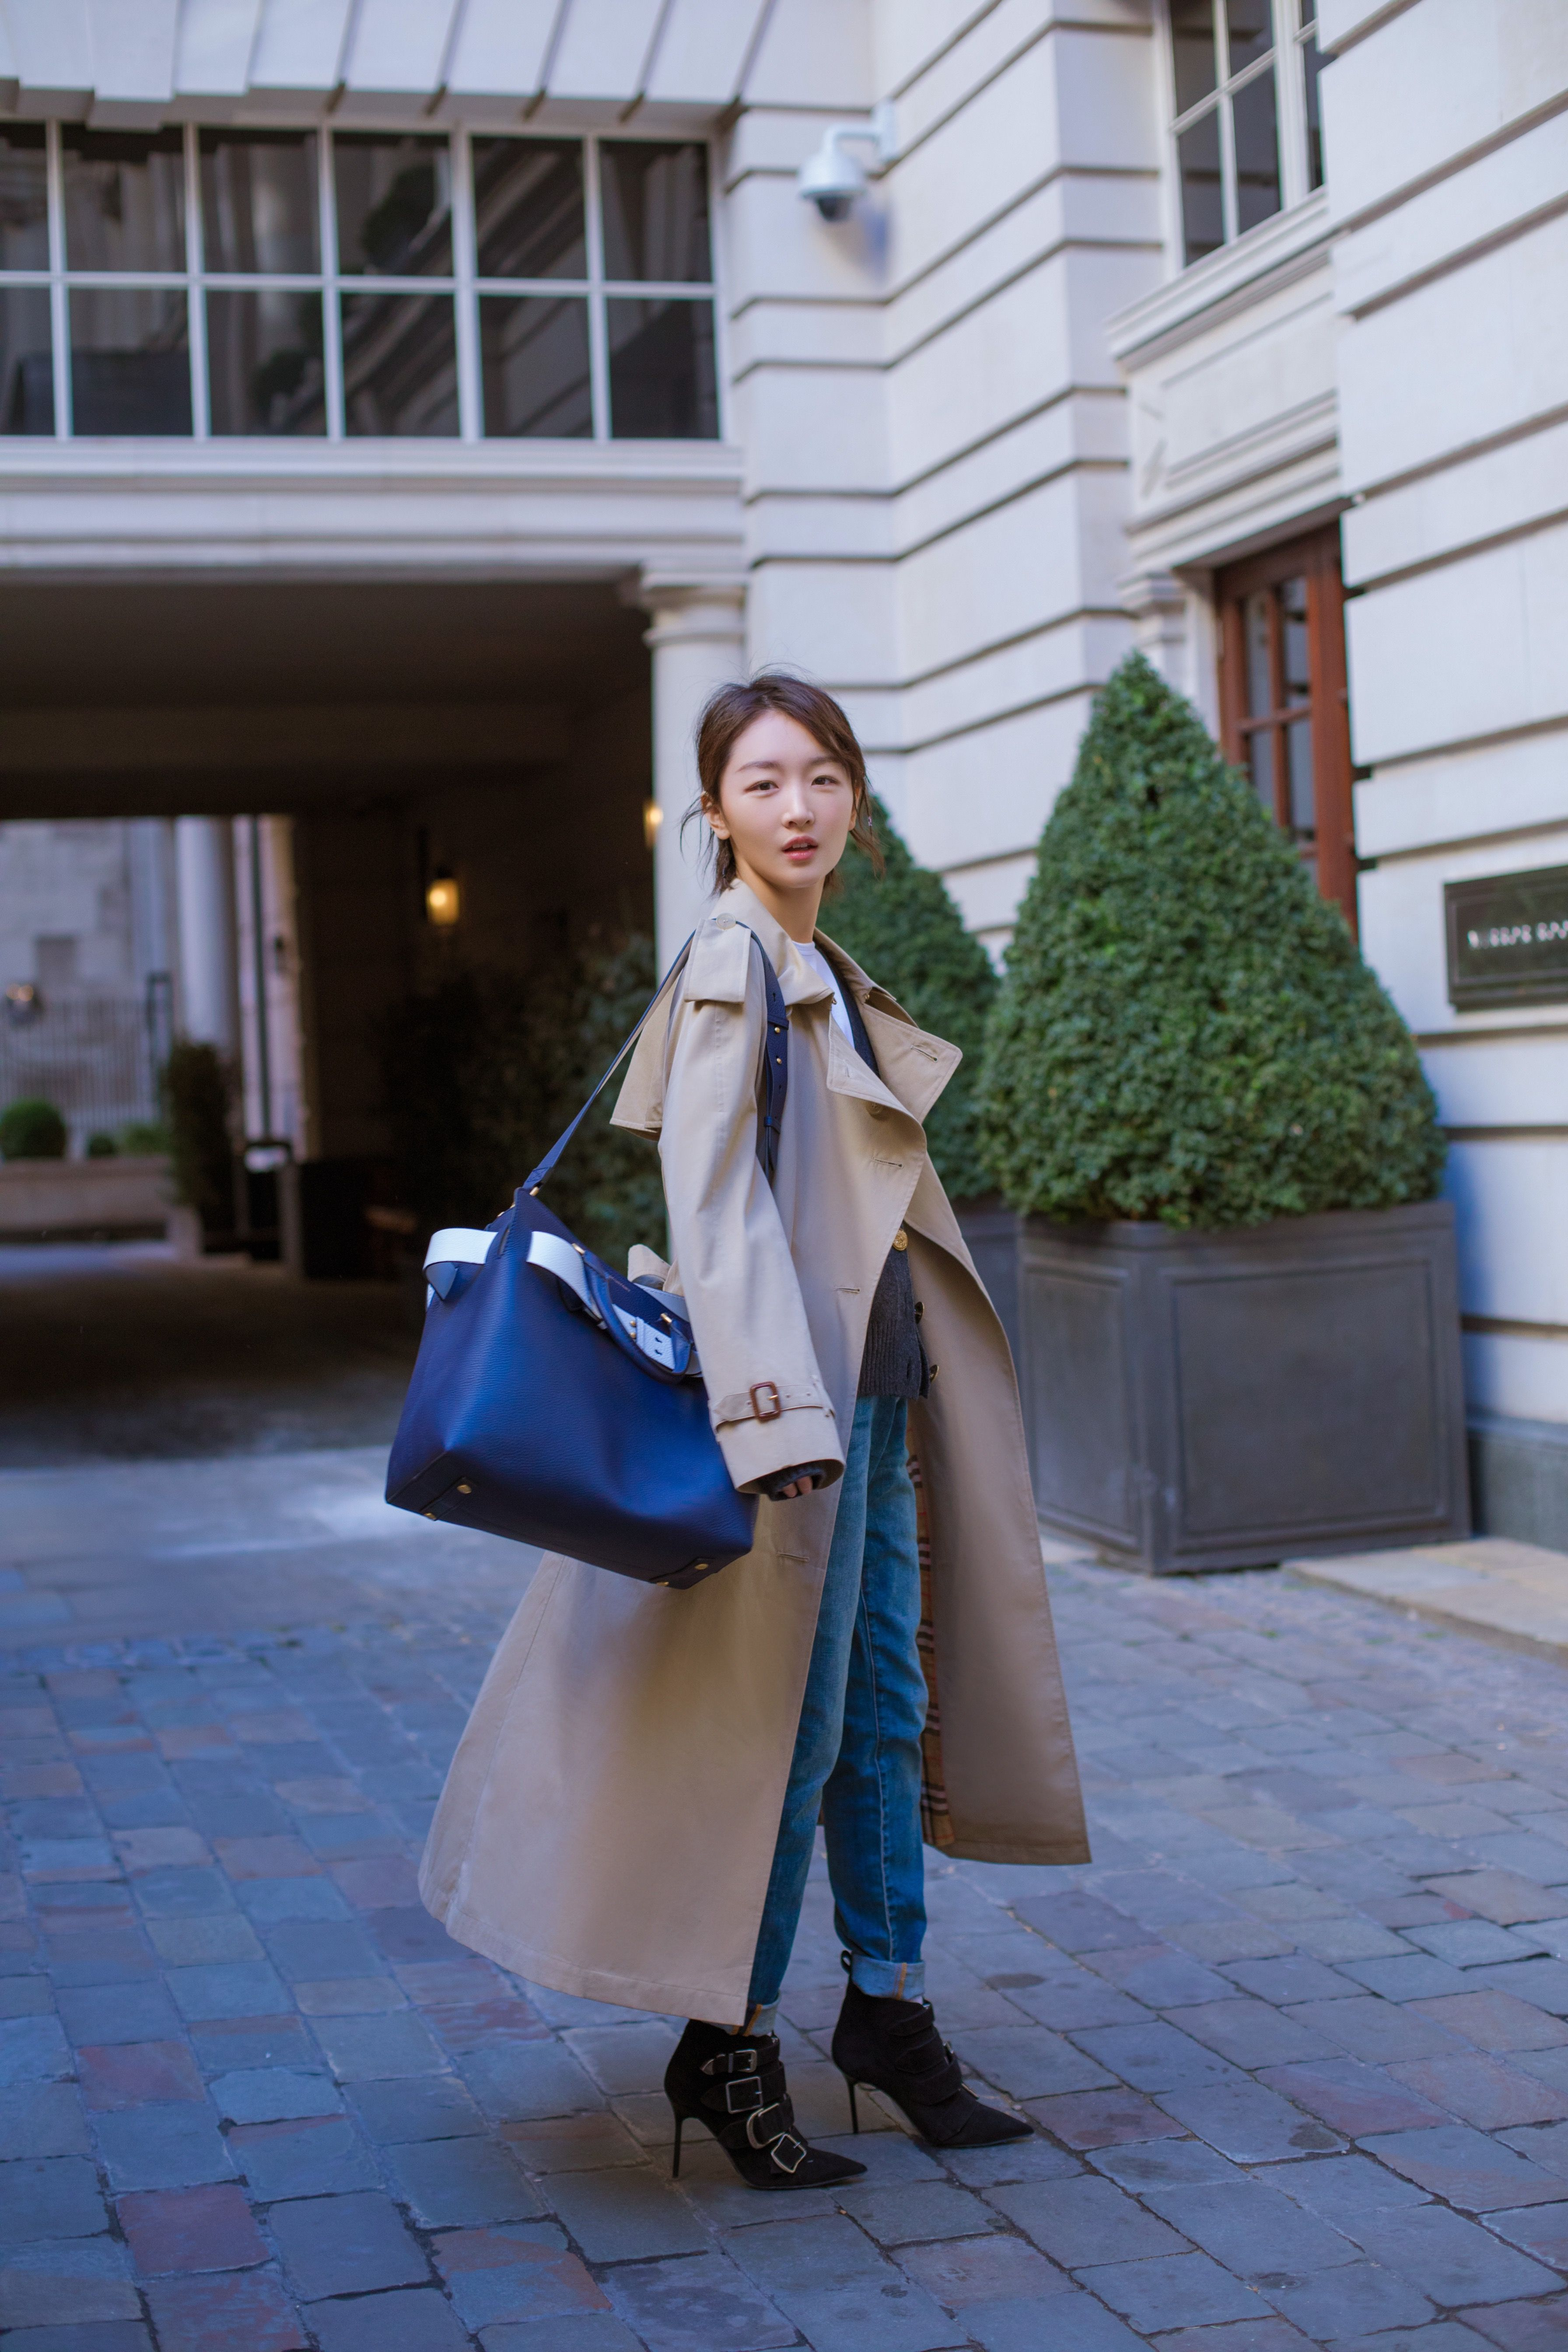 a7f27a34e4e61  ZhouDongyu styles a  Burberry tropical gabardine trench coat with   TheBeltBag in London